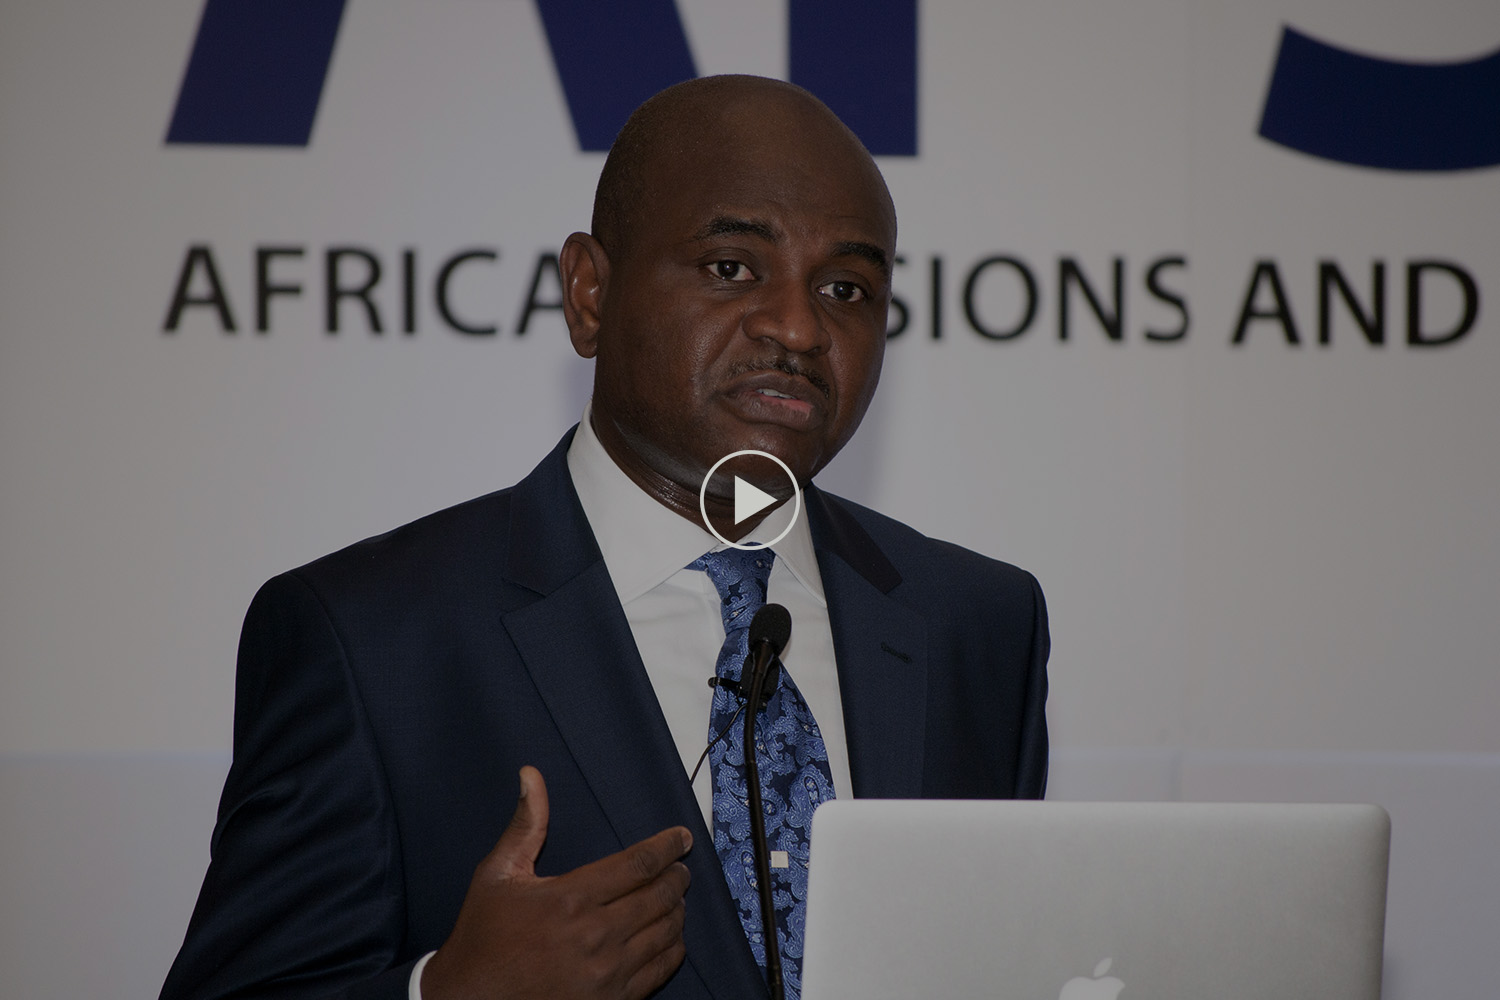 Africonomie-Kingsley-Chiedu-Moghalu-on-Leadership-Economy-and-Governance